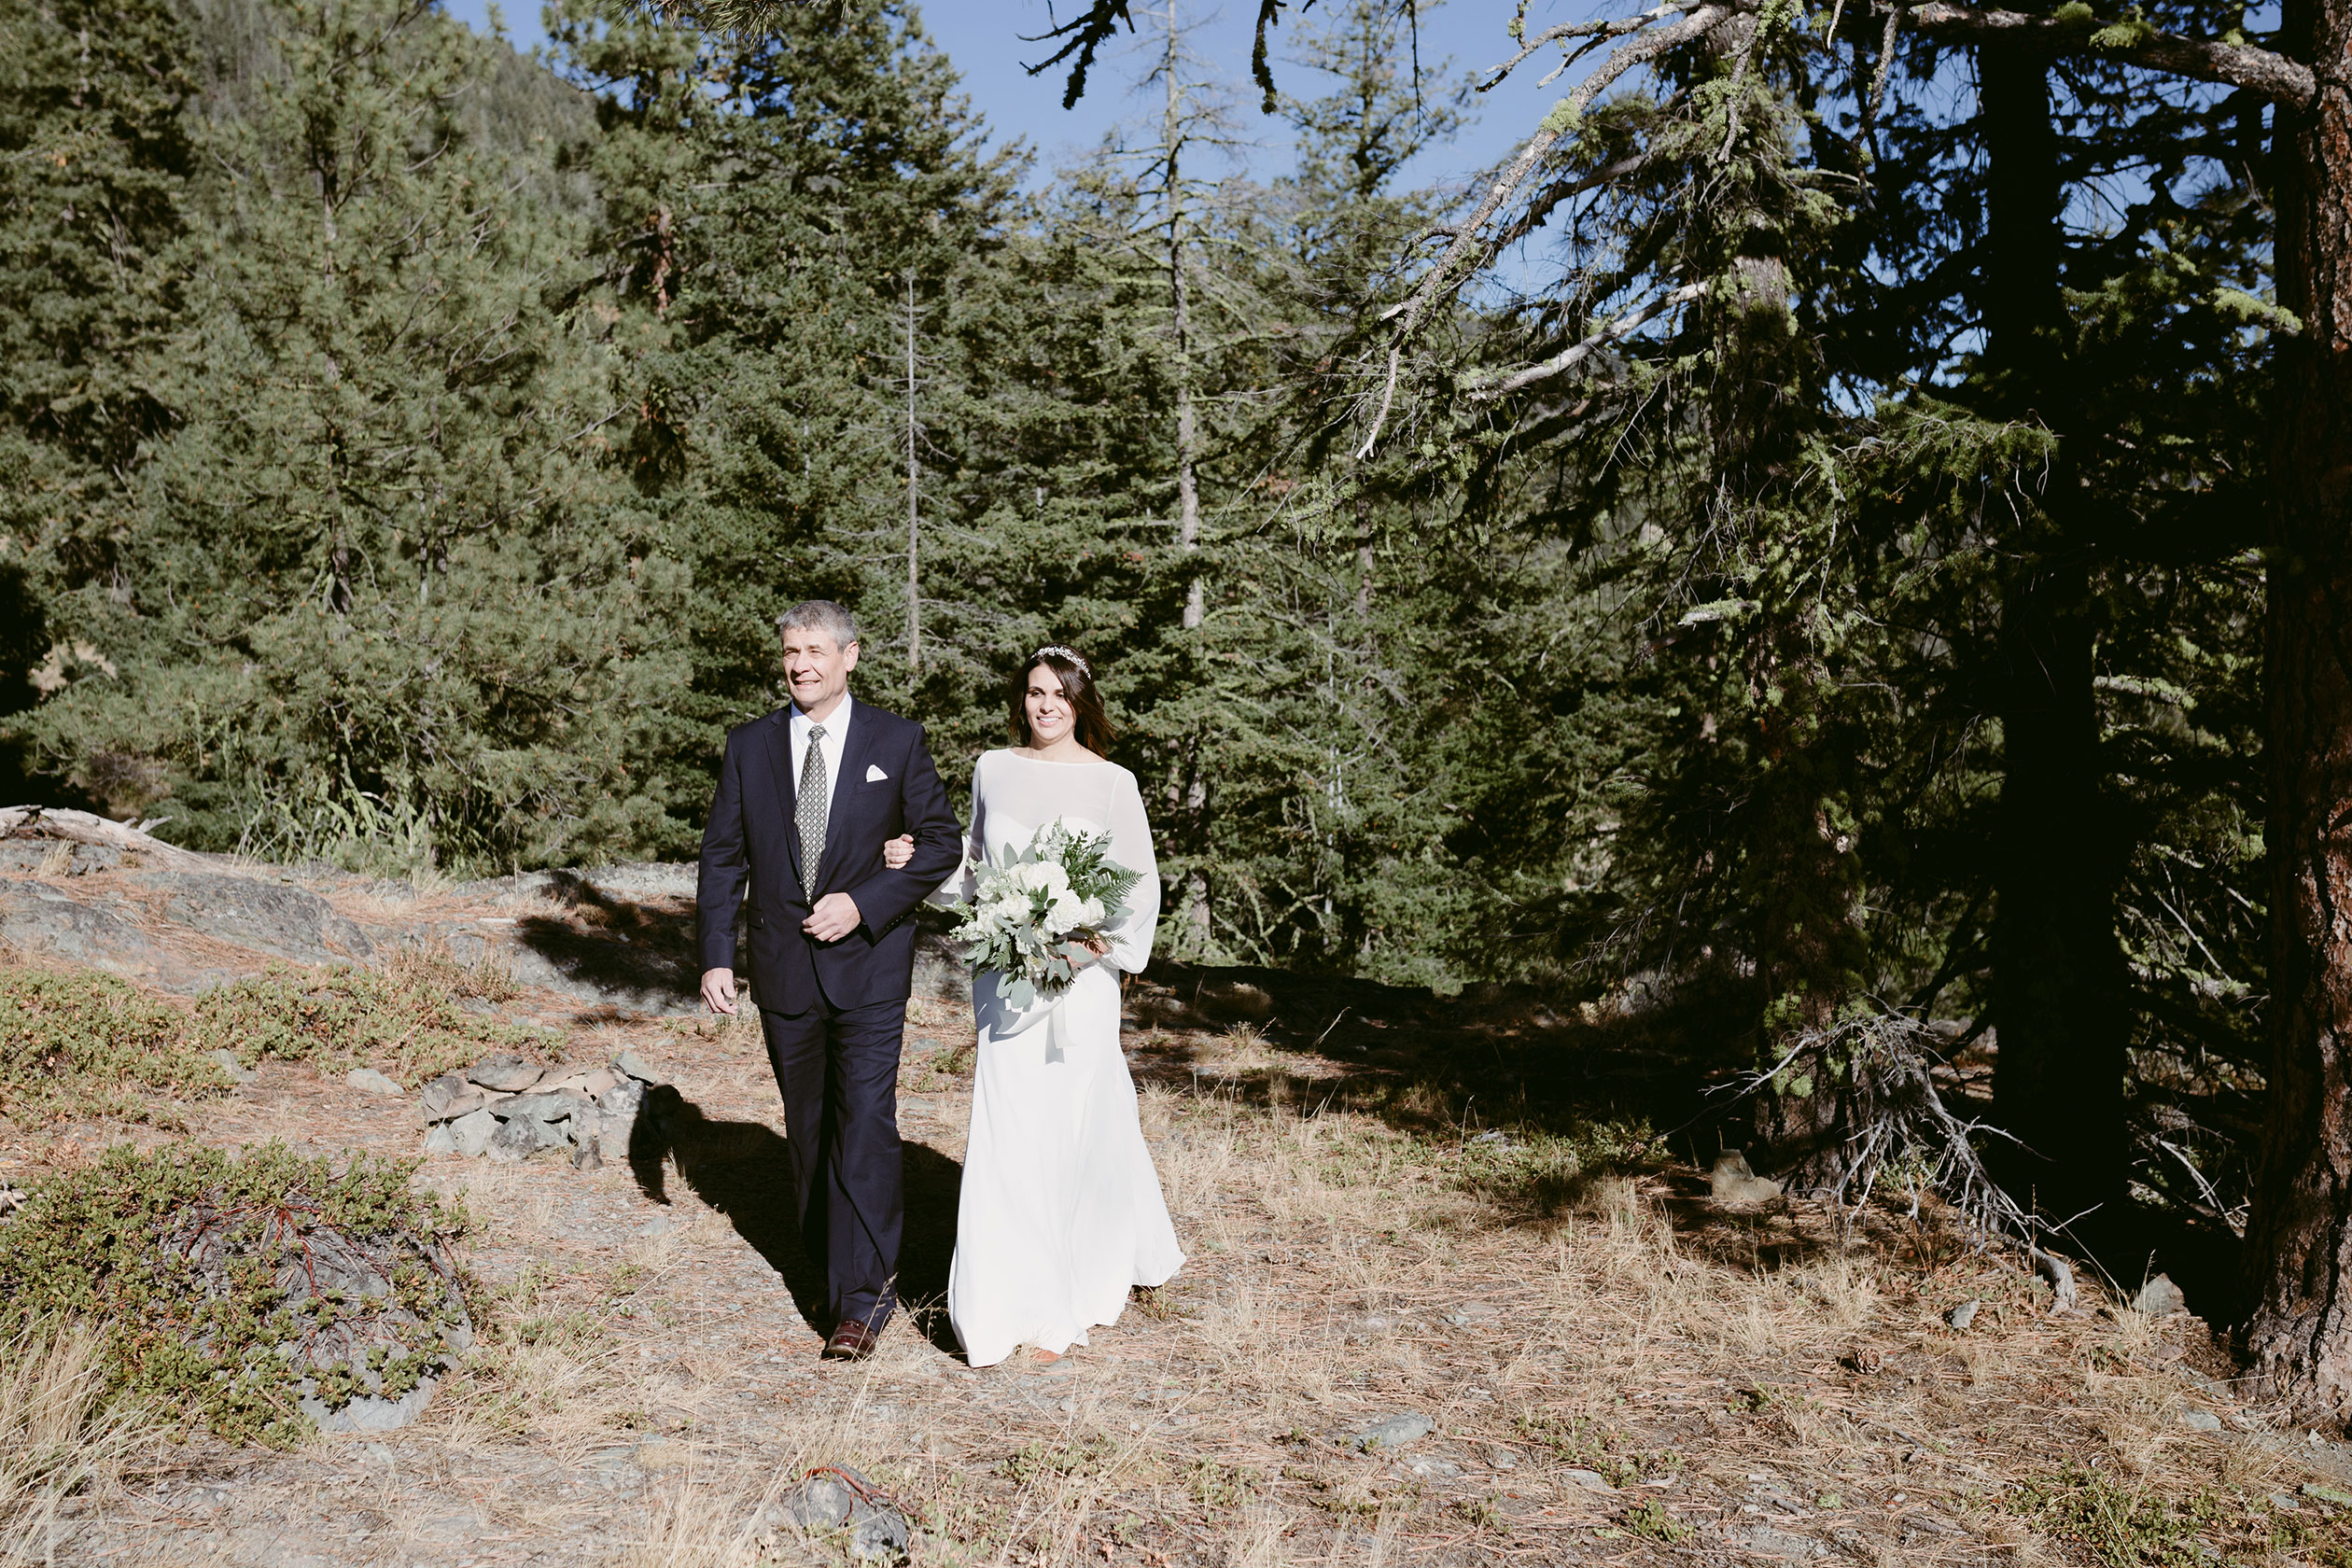 Bride and Groom Elope on Mountain